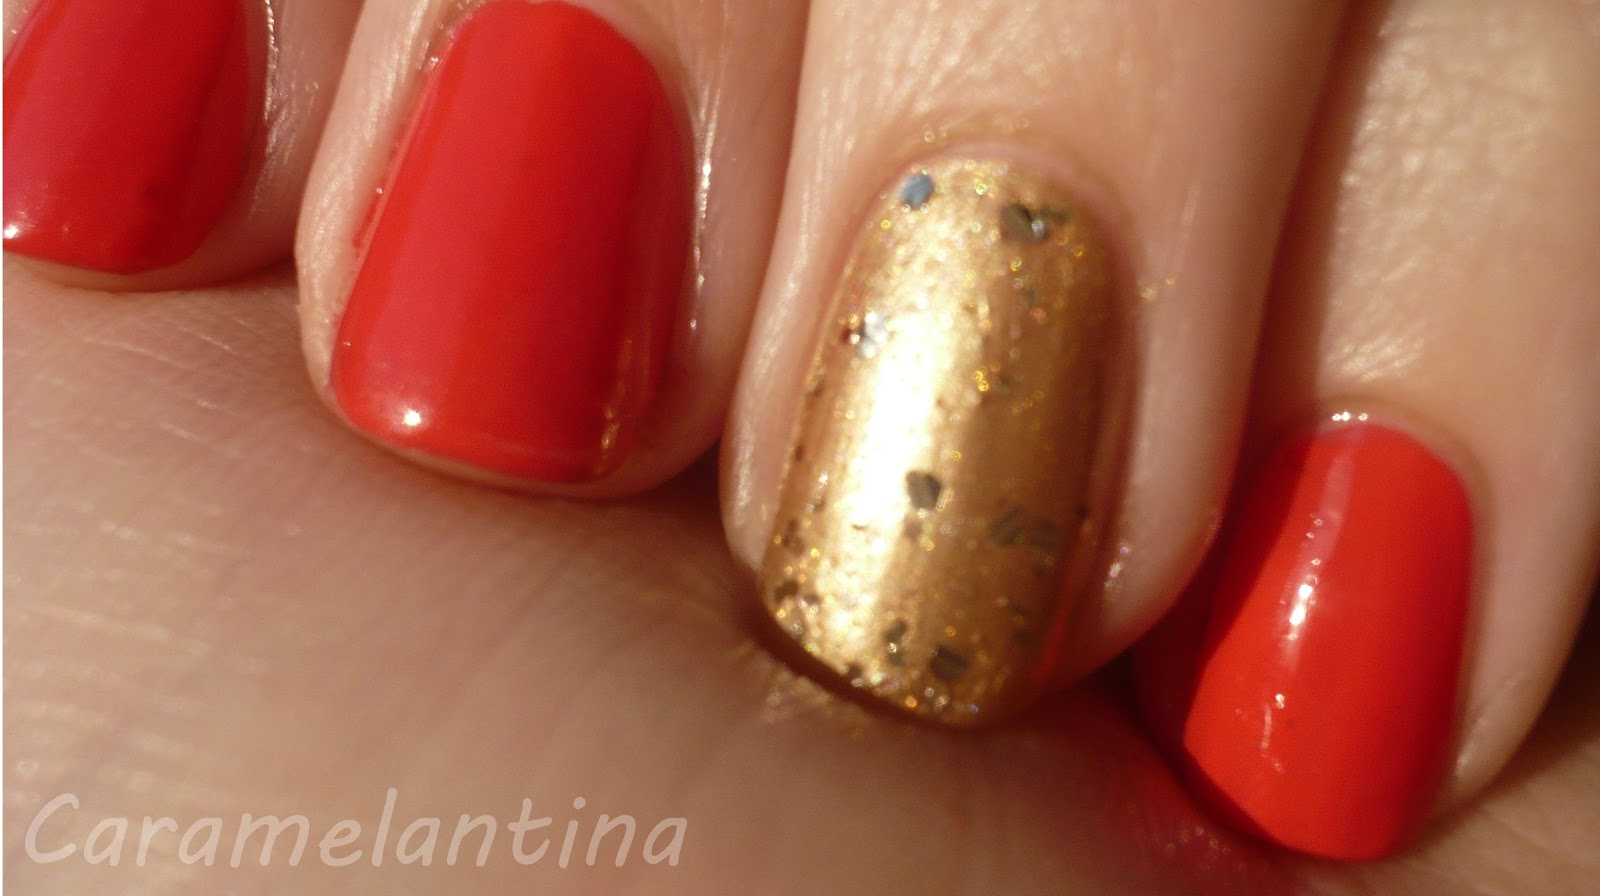 Maybelline Rose Salsa, Regina Day, Revlon Gold Coast, Hey, Nice Nails! Shine Glitter, opiniones swatch review